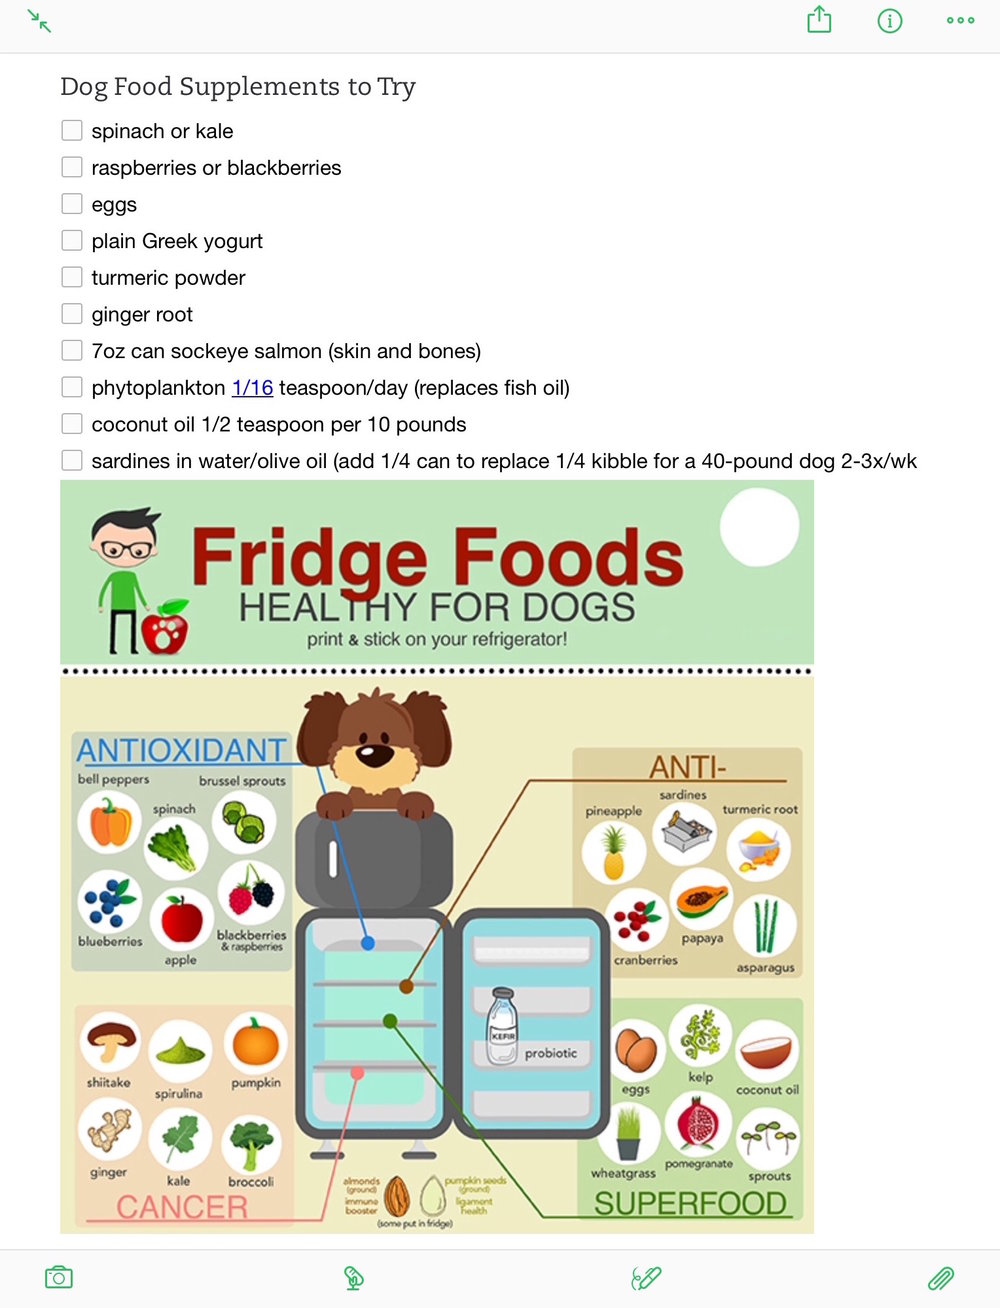 Love how easily the Fridge Foods infographic from Planet Paws clipped into Evernote. Now, when I'm grocery shopping, I can easily add variety to what I'm buying to supplement our pups' kibble.